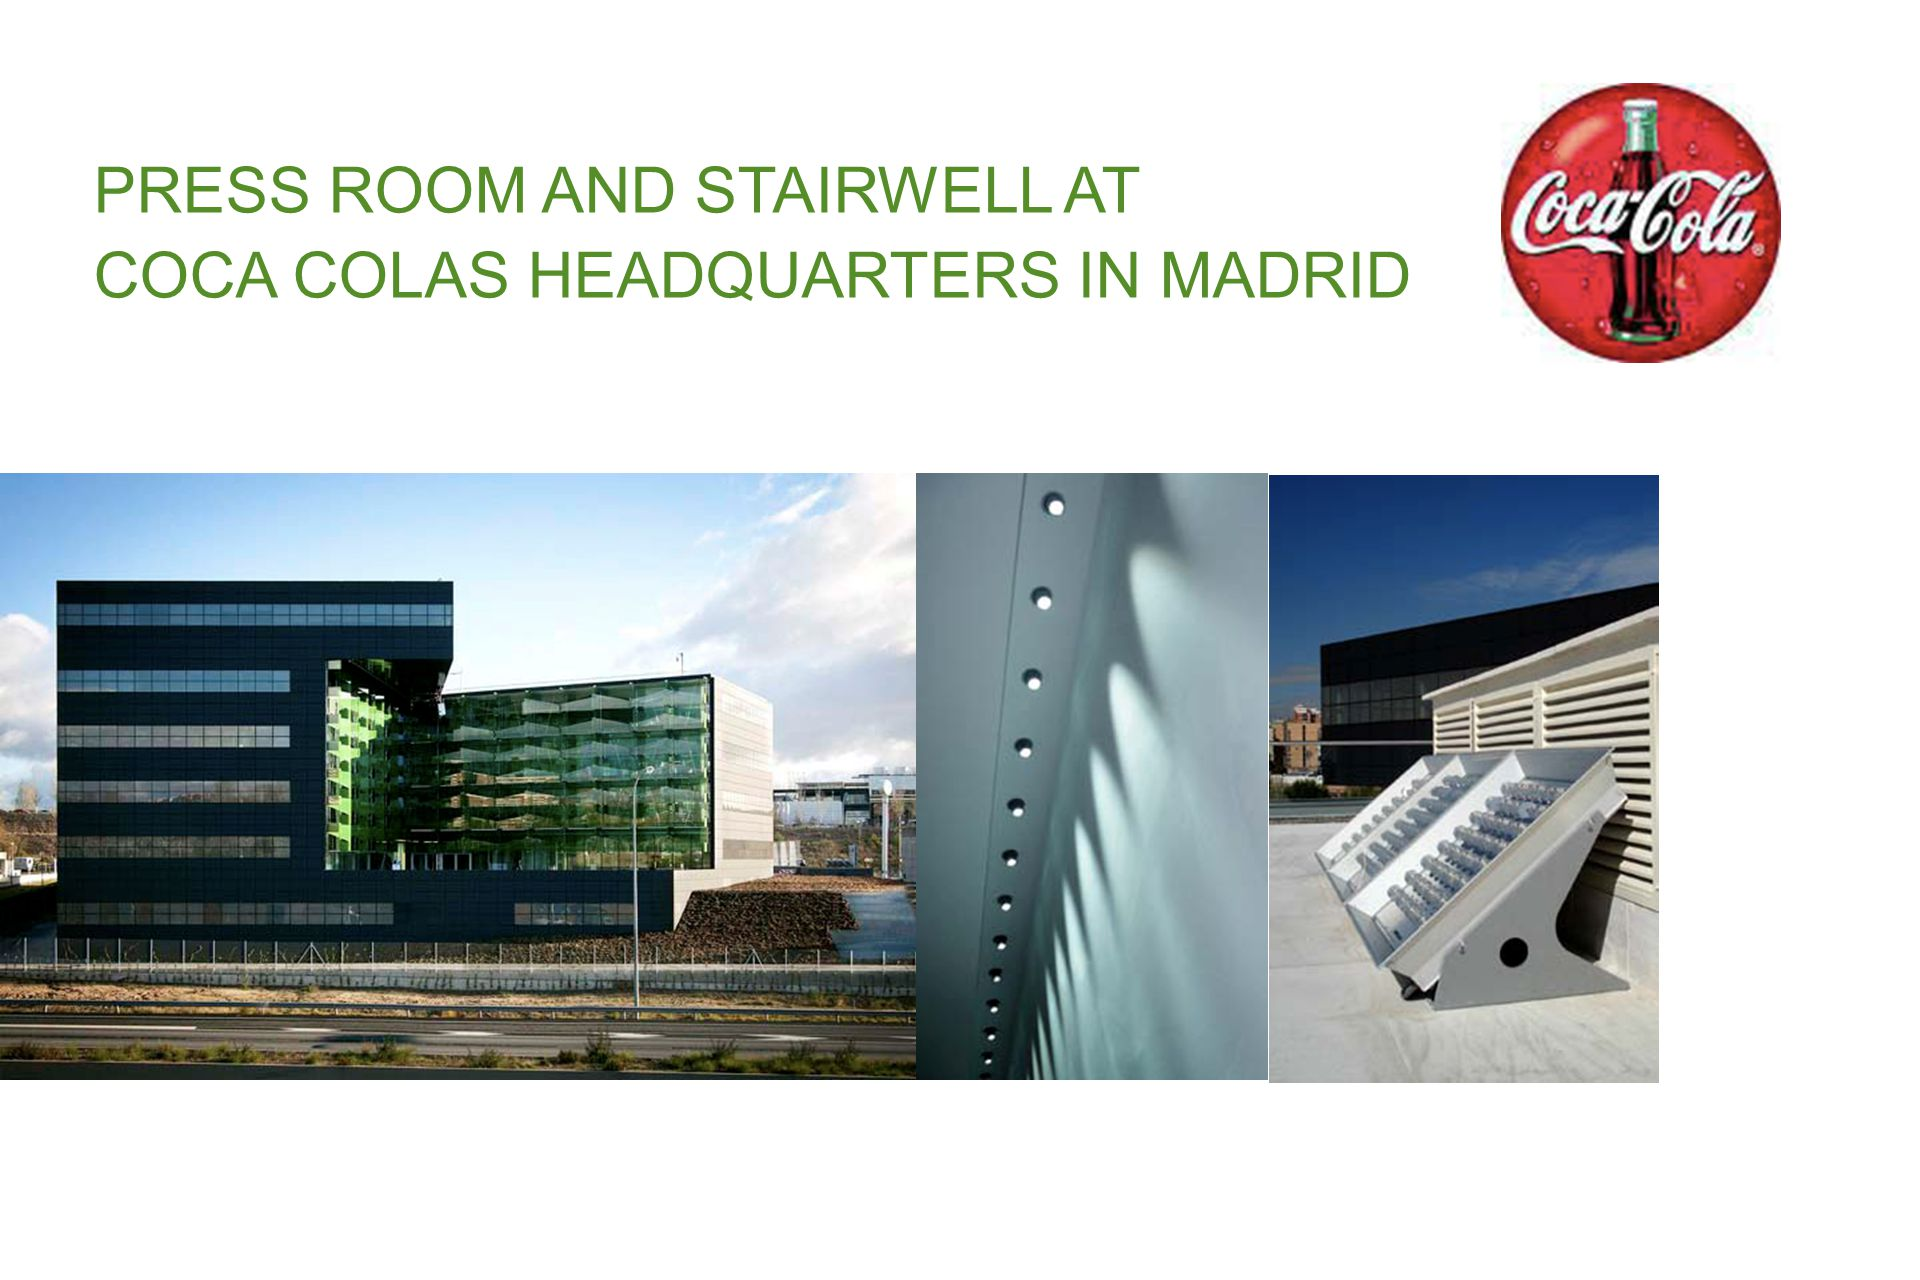 PRESS ROOM AND STAIRWELL AT COCA COLAS HEADQUARTERS IN MADRID